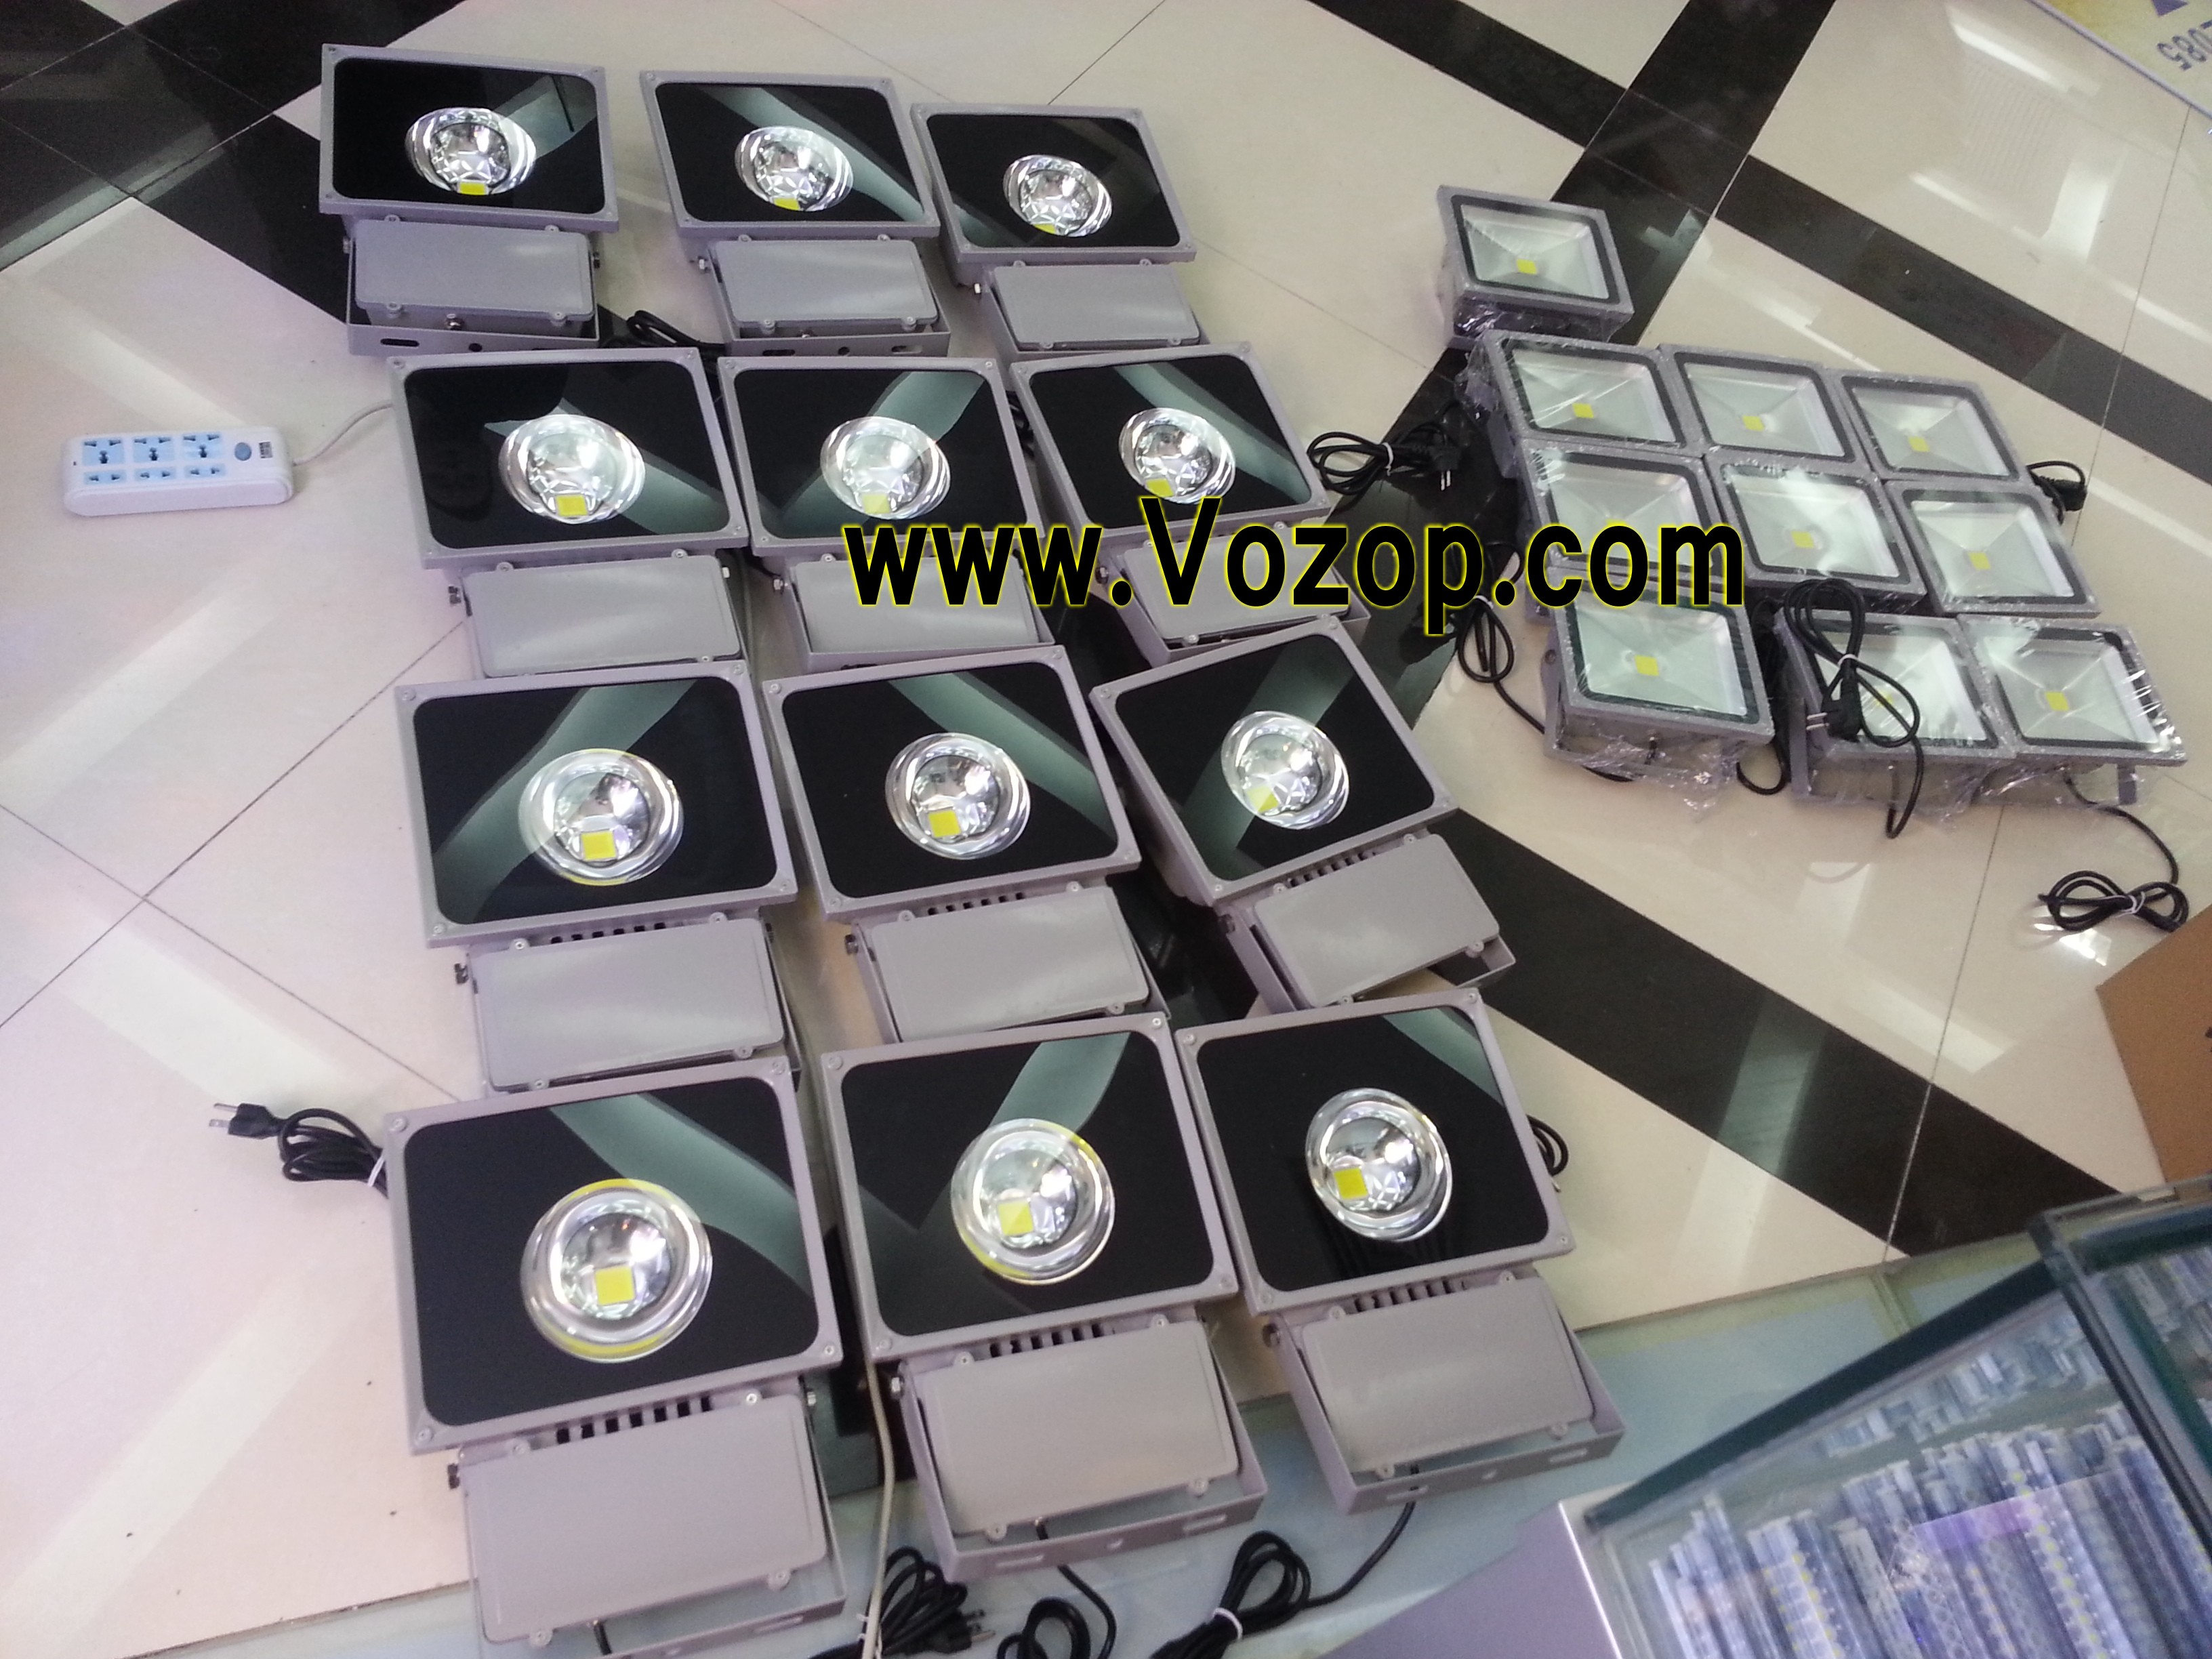 Pure_white_warm_white_RGB_100W_LED_Floodlights_Factory_price_wholesale_100W_LED_flood_light_narrow_angle_60